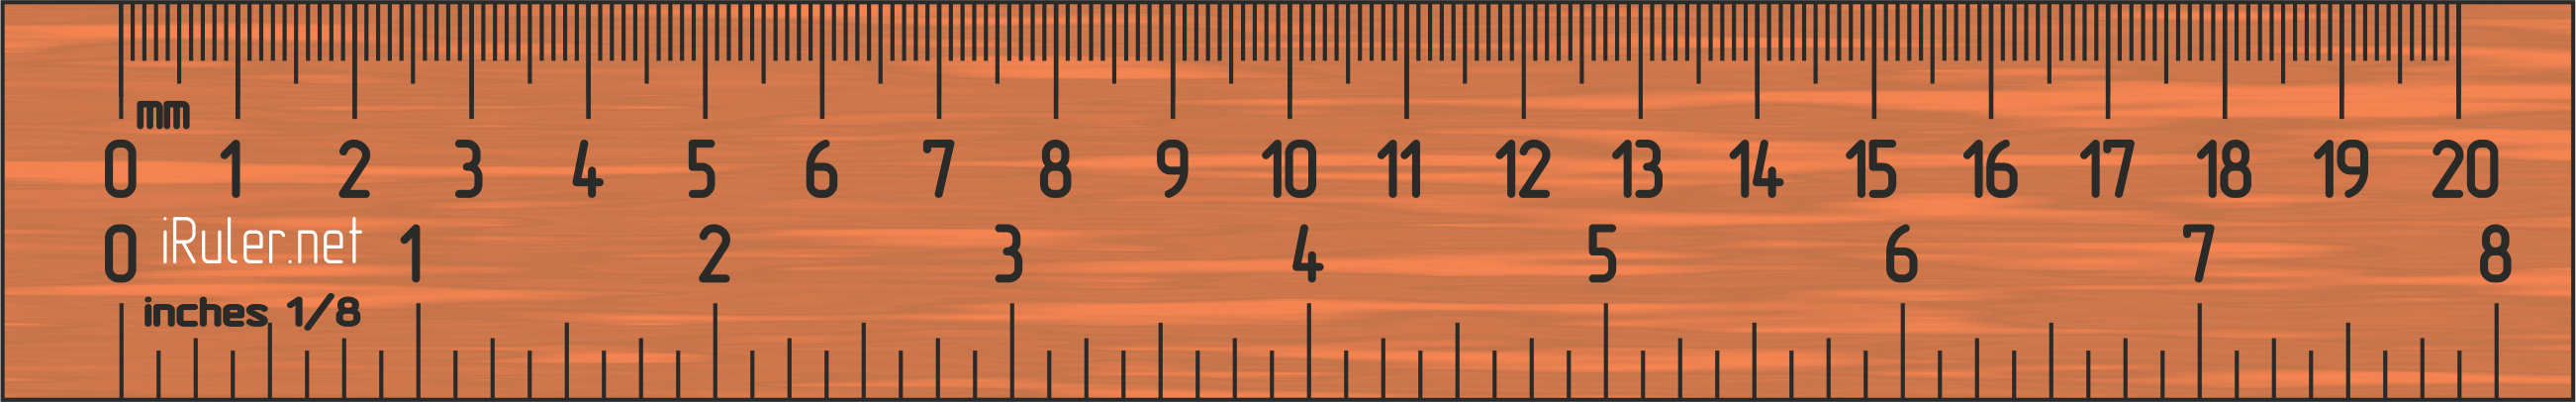 10 In Cm Iruler Online Ruler